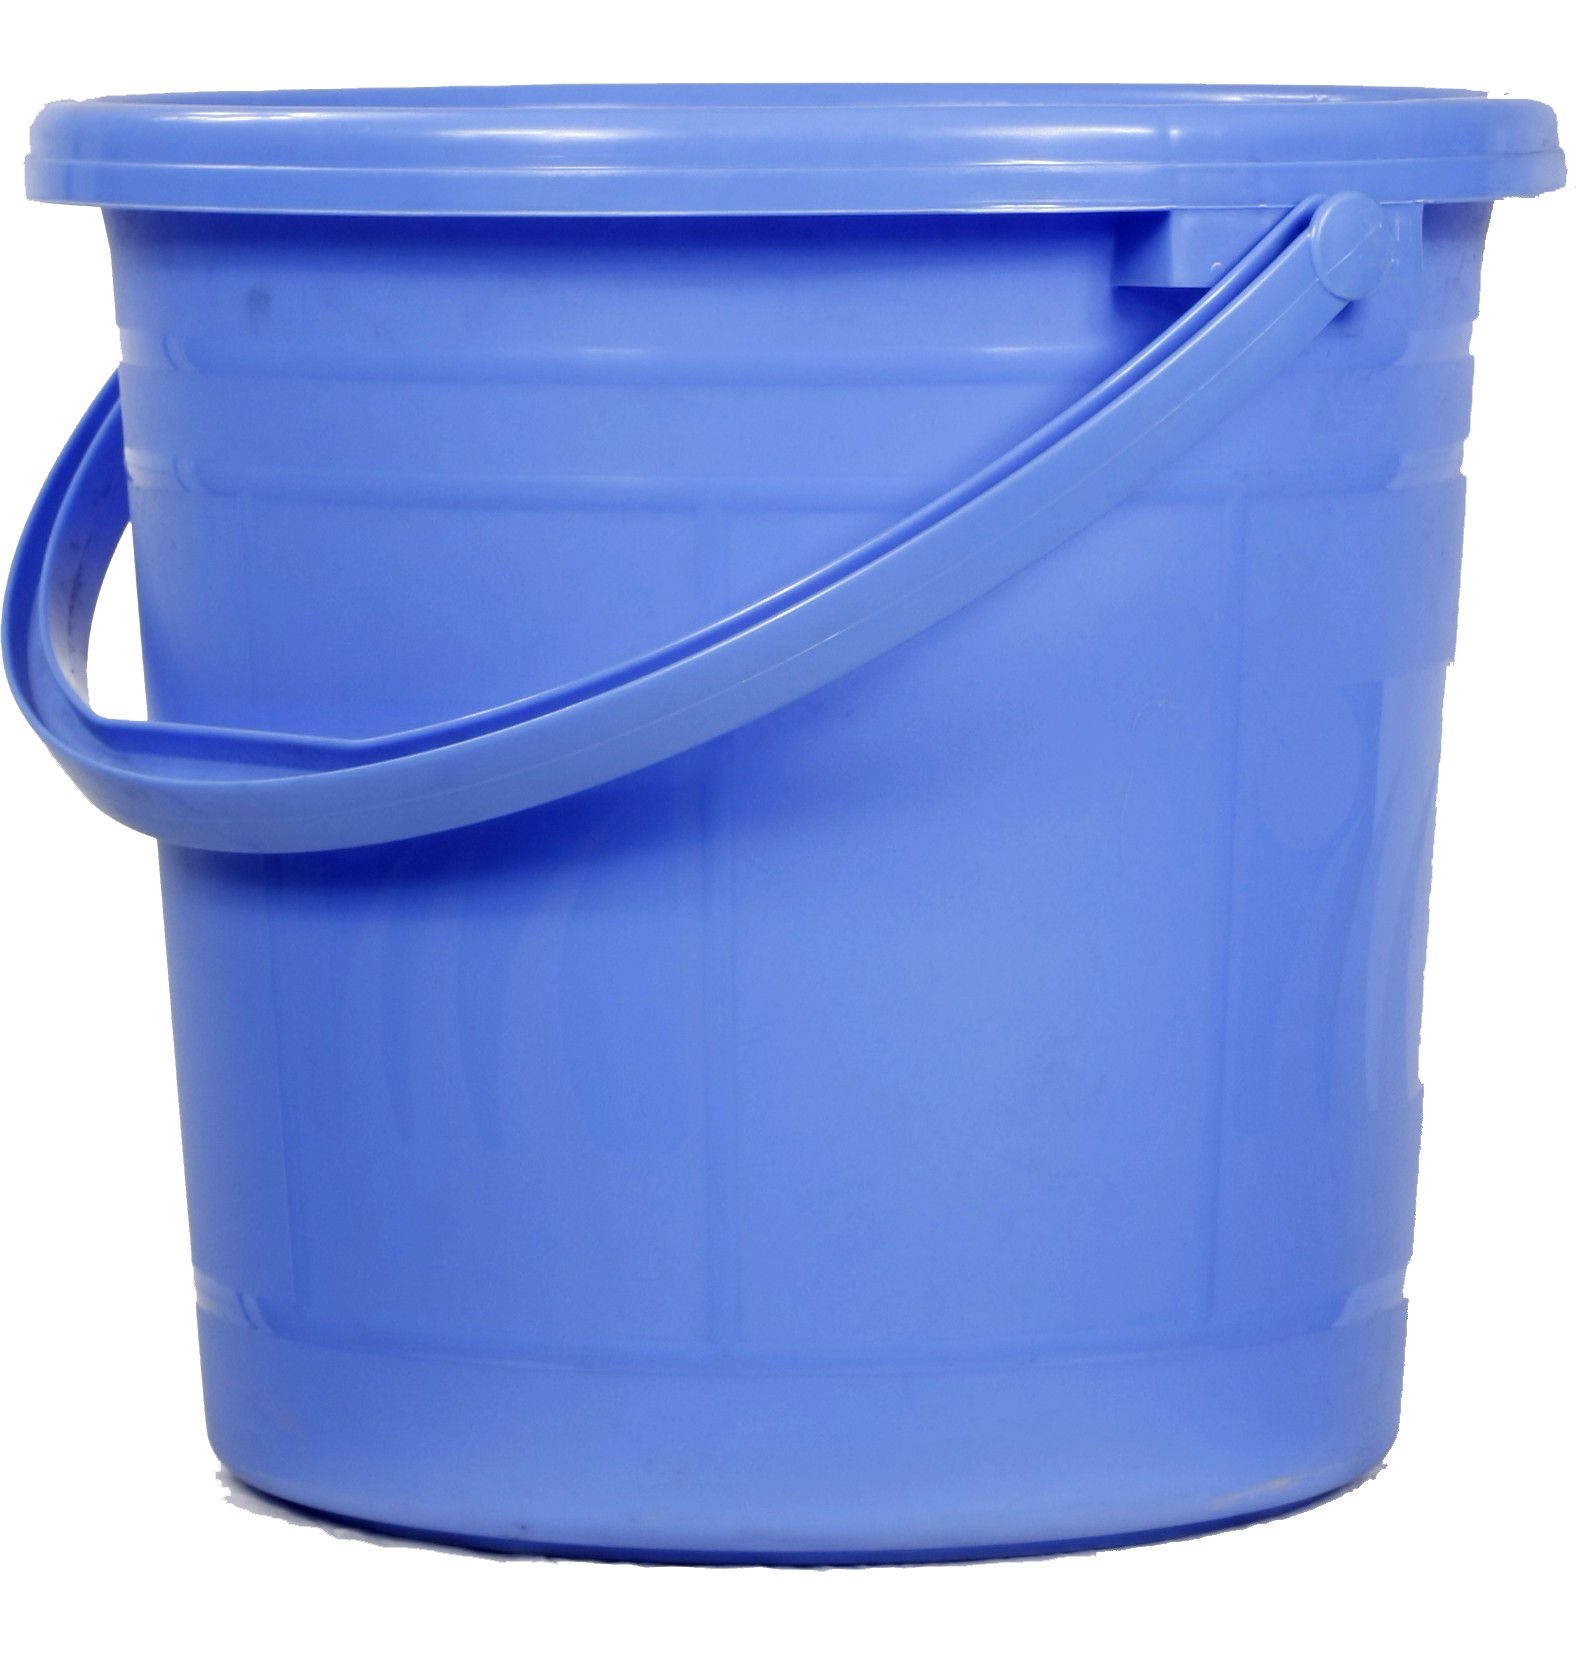 Bucket png. Images transparent free download